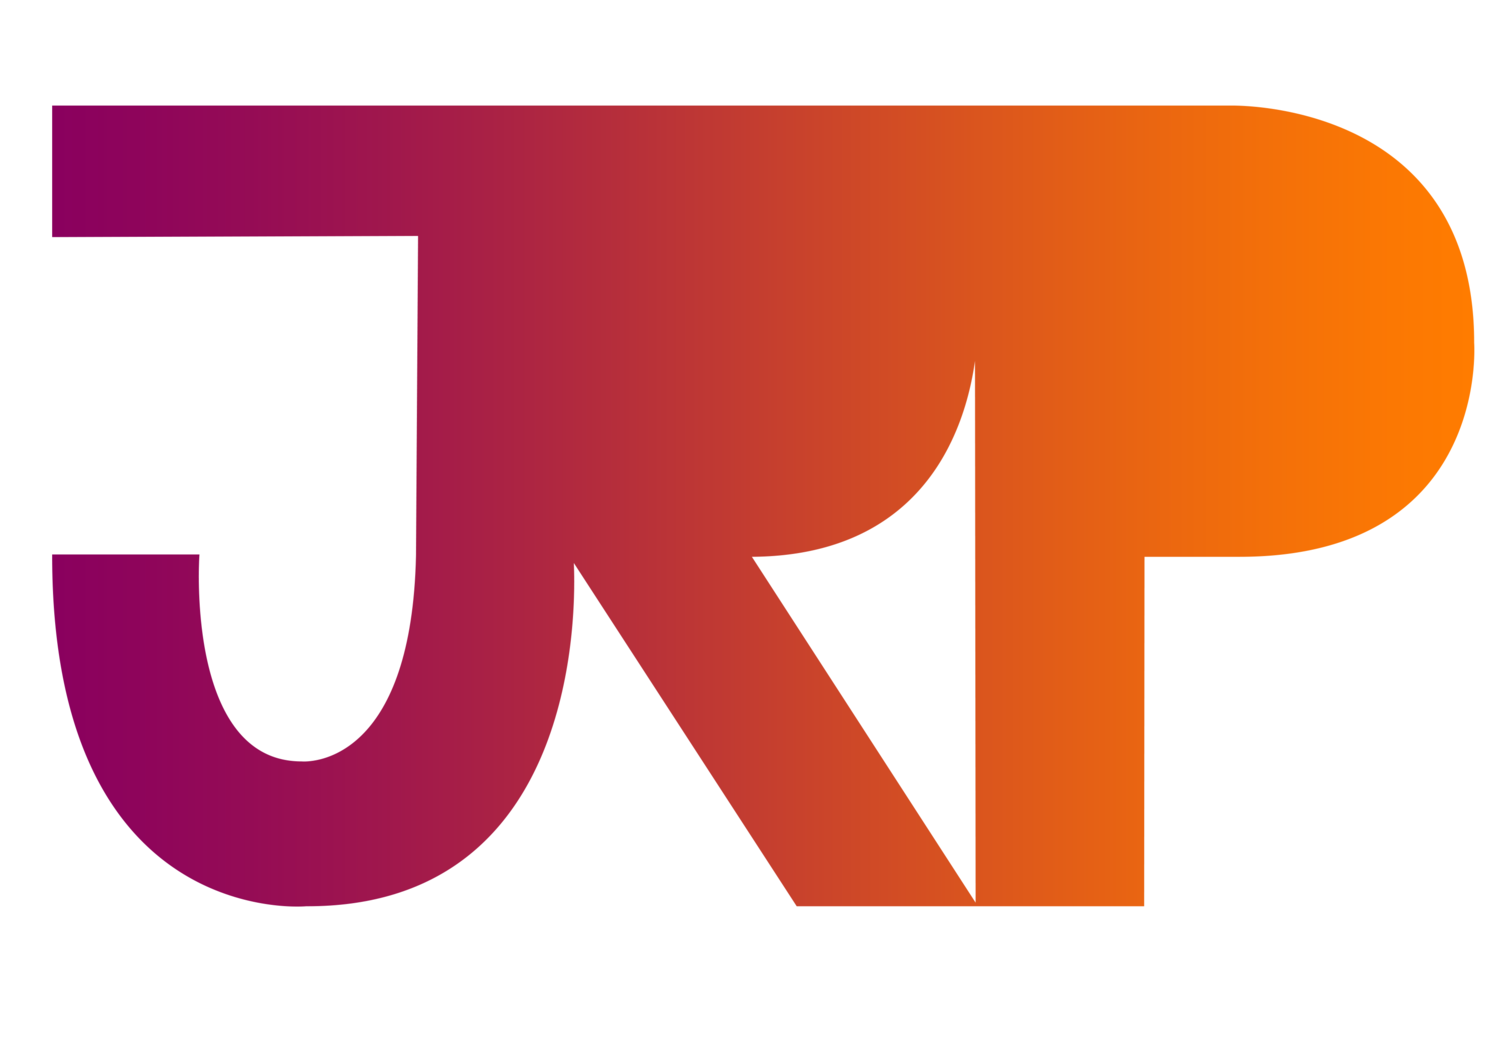 Joshua Robson Productions